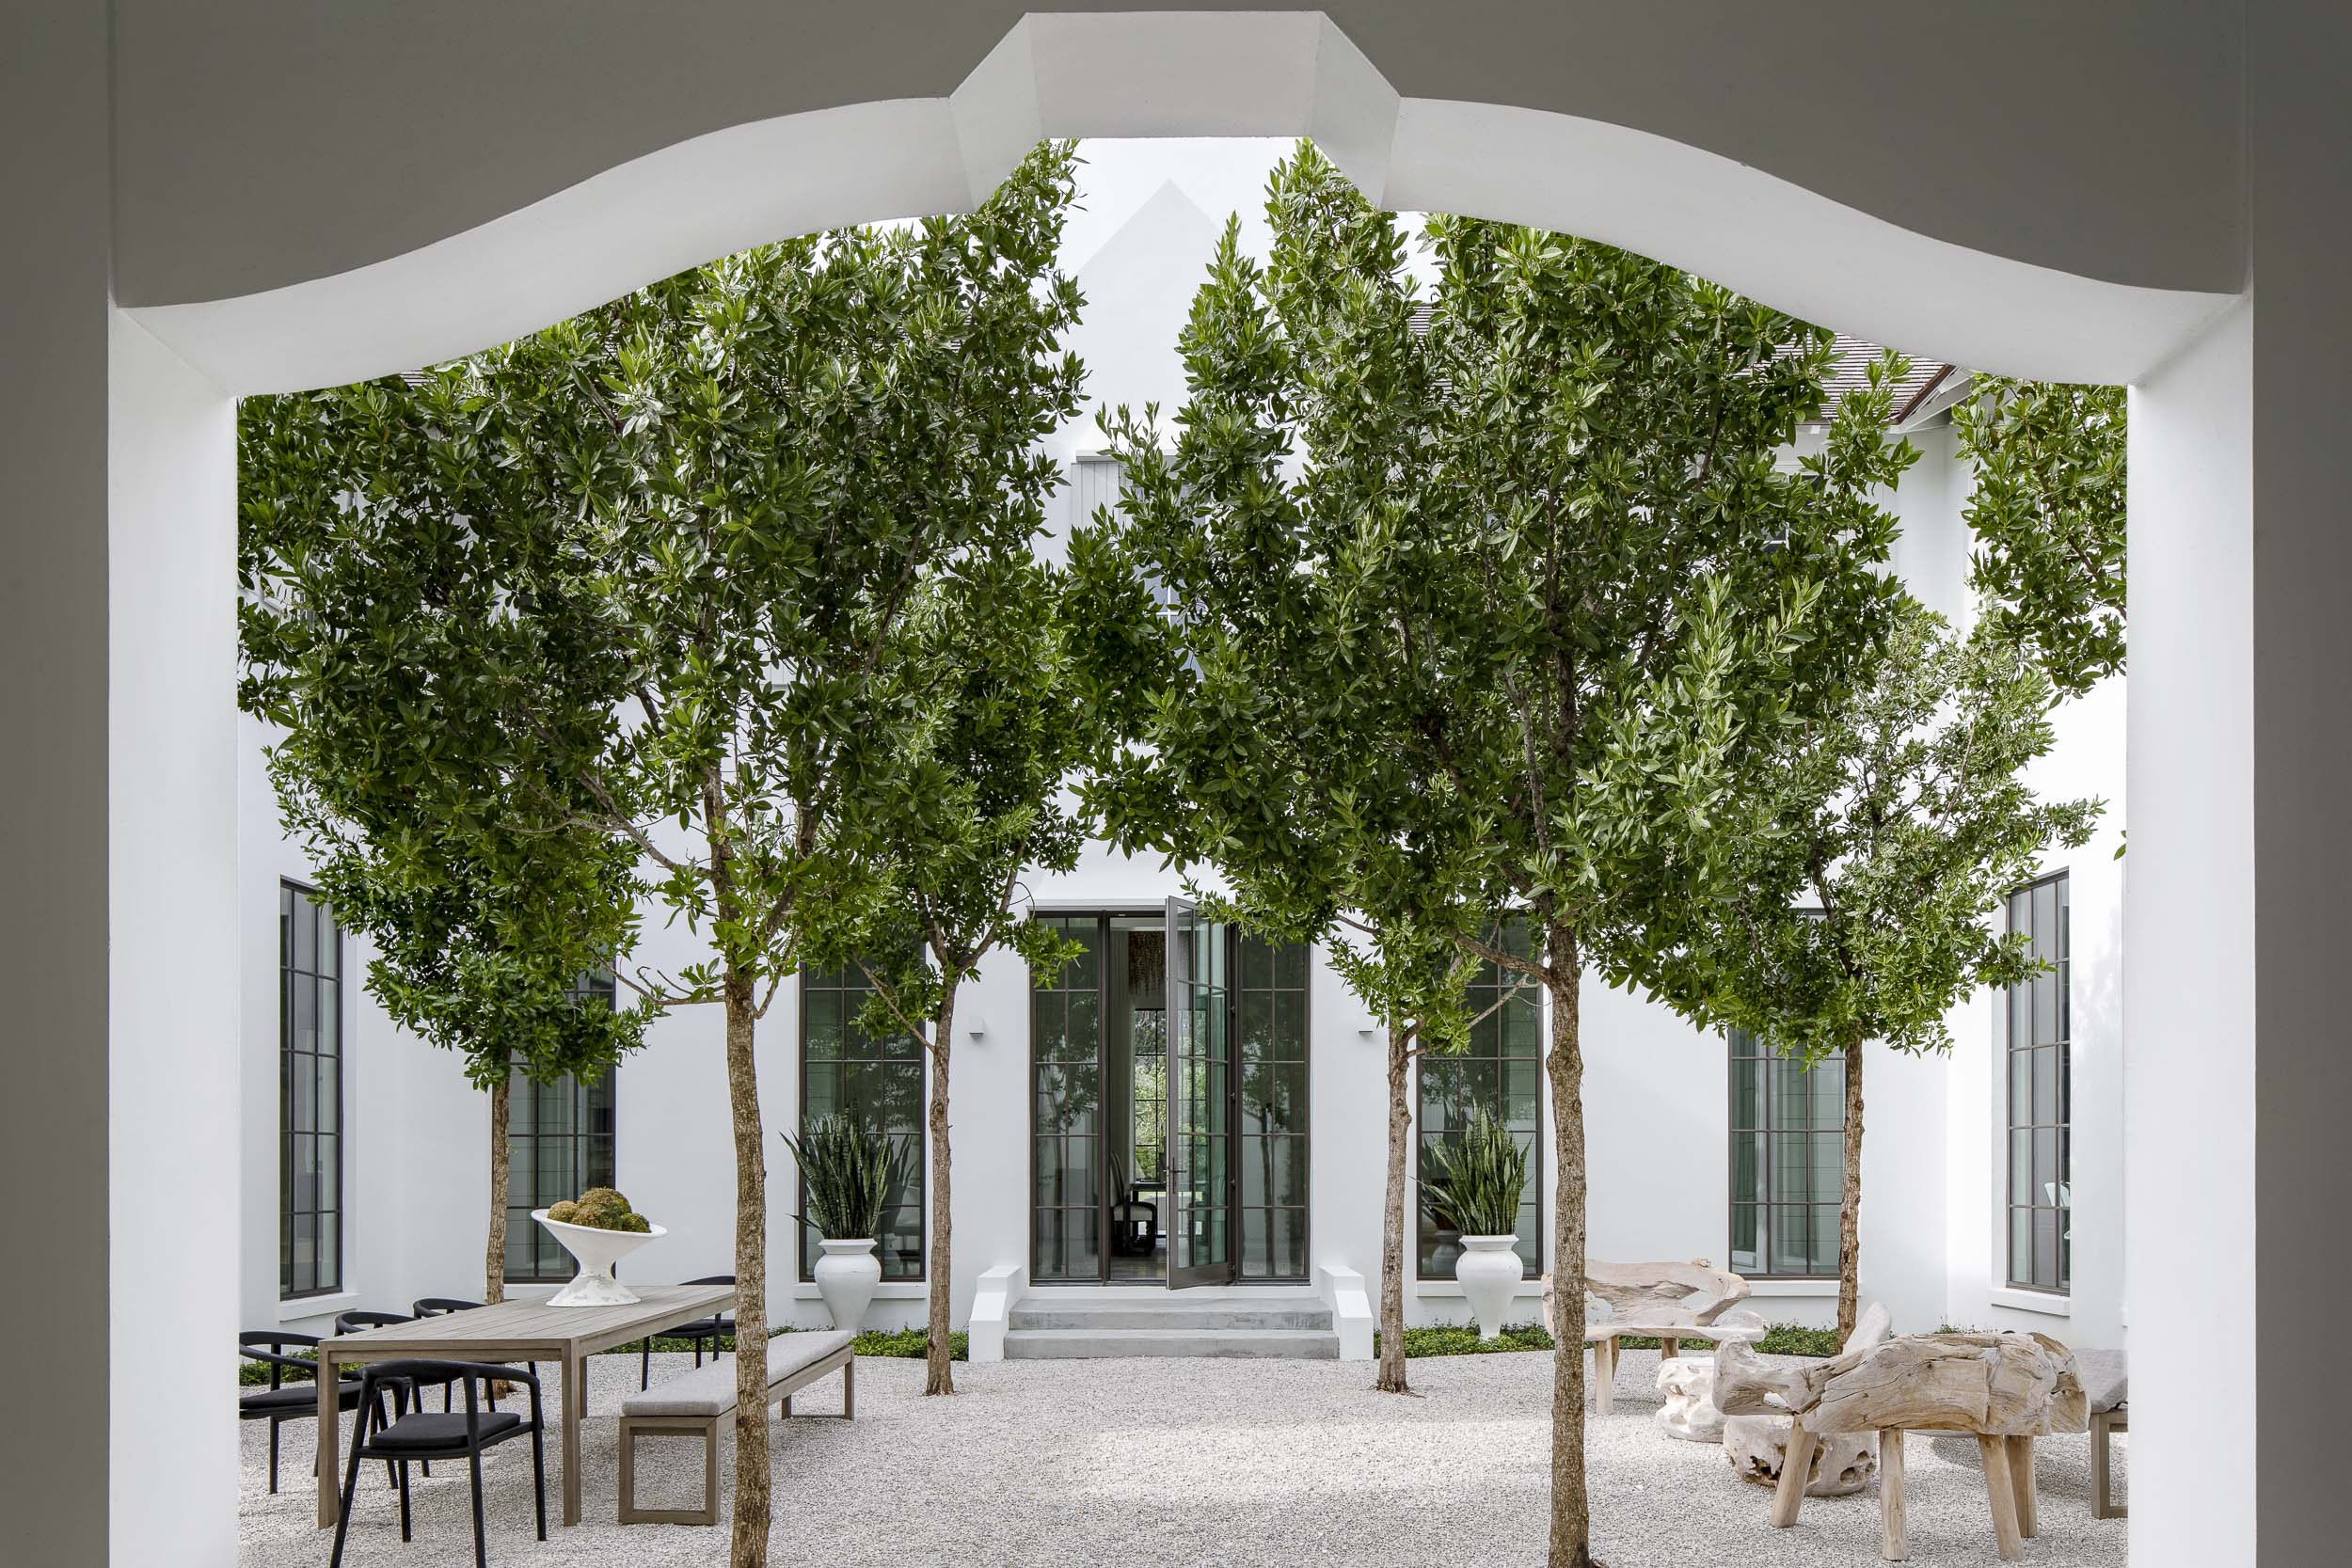 Courtyard by Moor, Baker & Associates and Olivia O